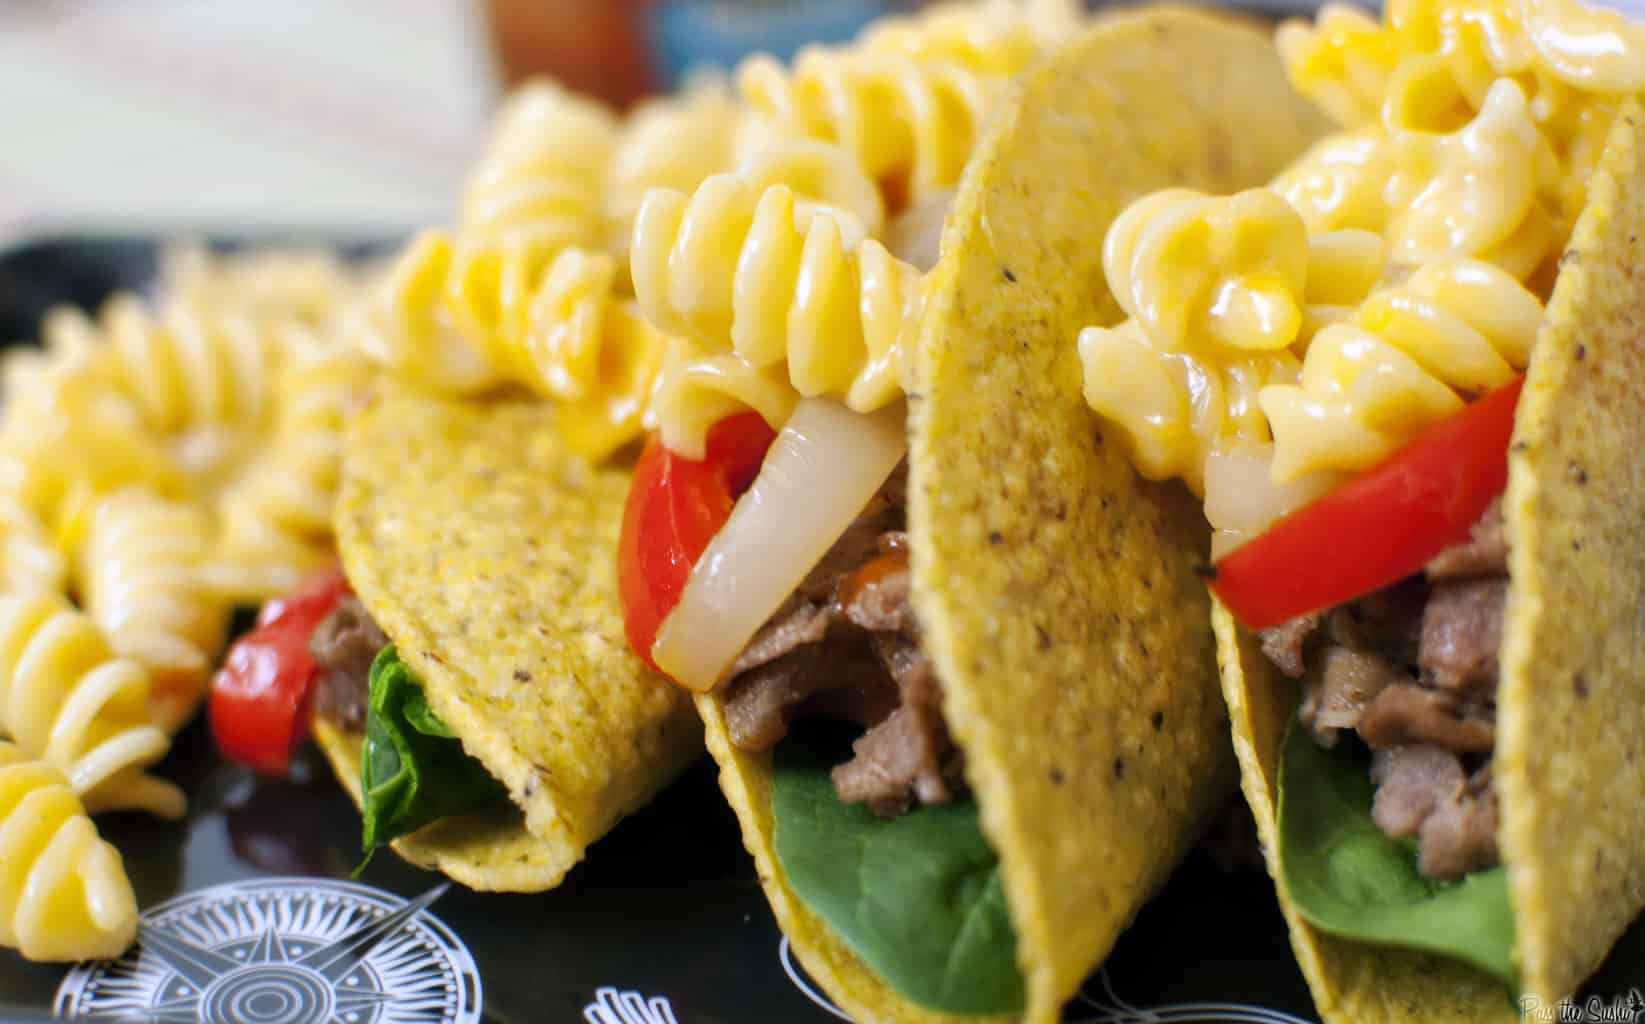 Using leftovers from your fridge before they go bad is easy and delicious with this recipe for mac and cheese steak tacos. Get the comfort food recipe from passthesushi.com